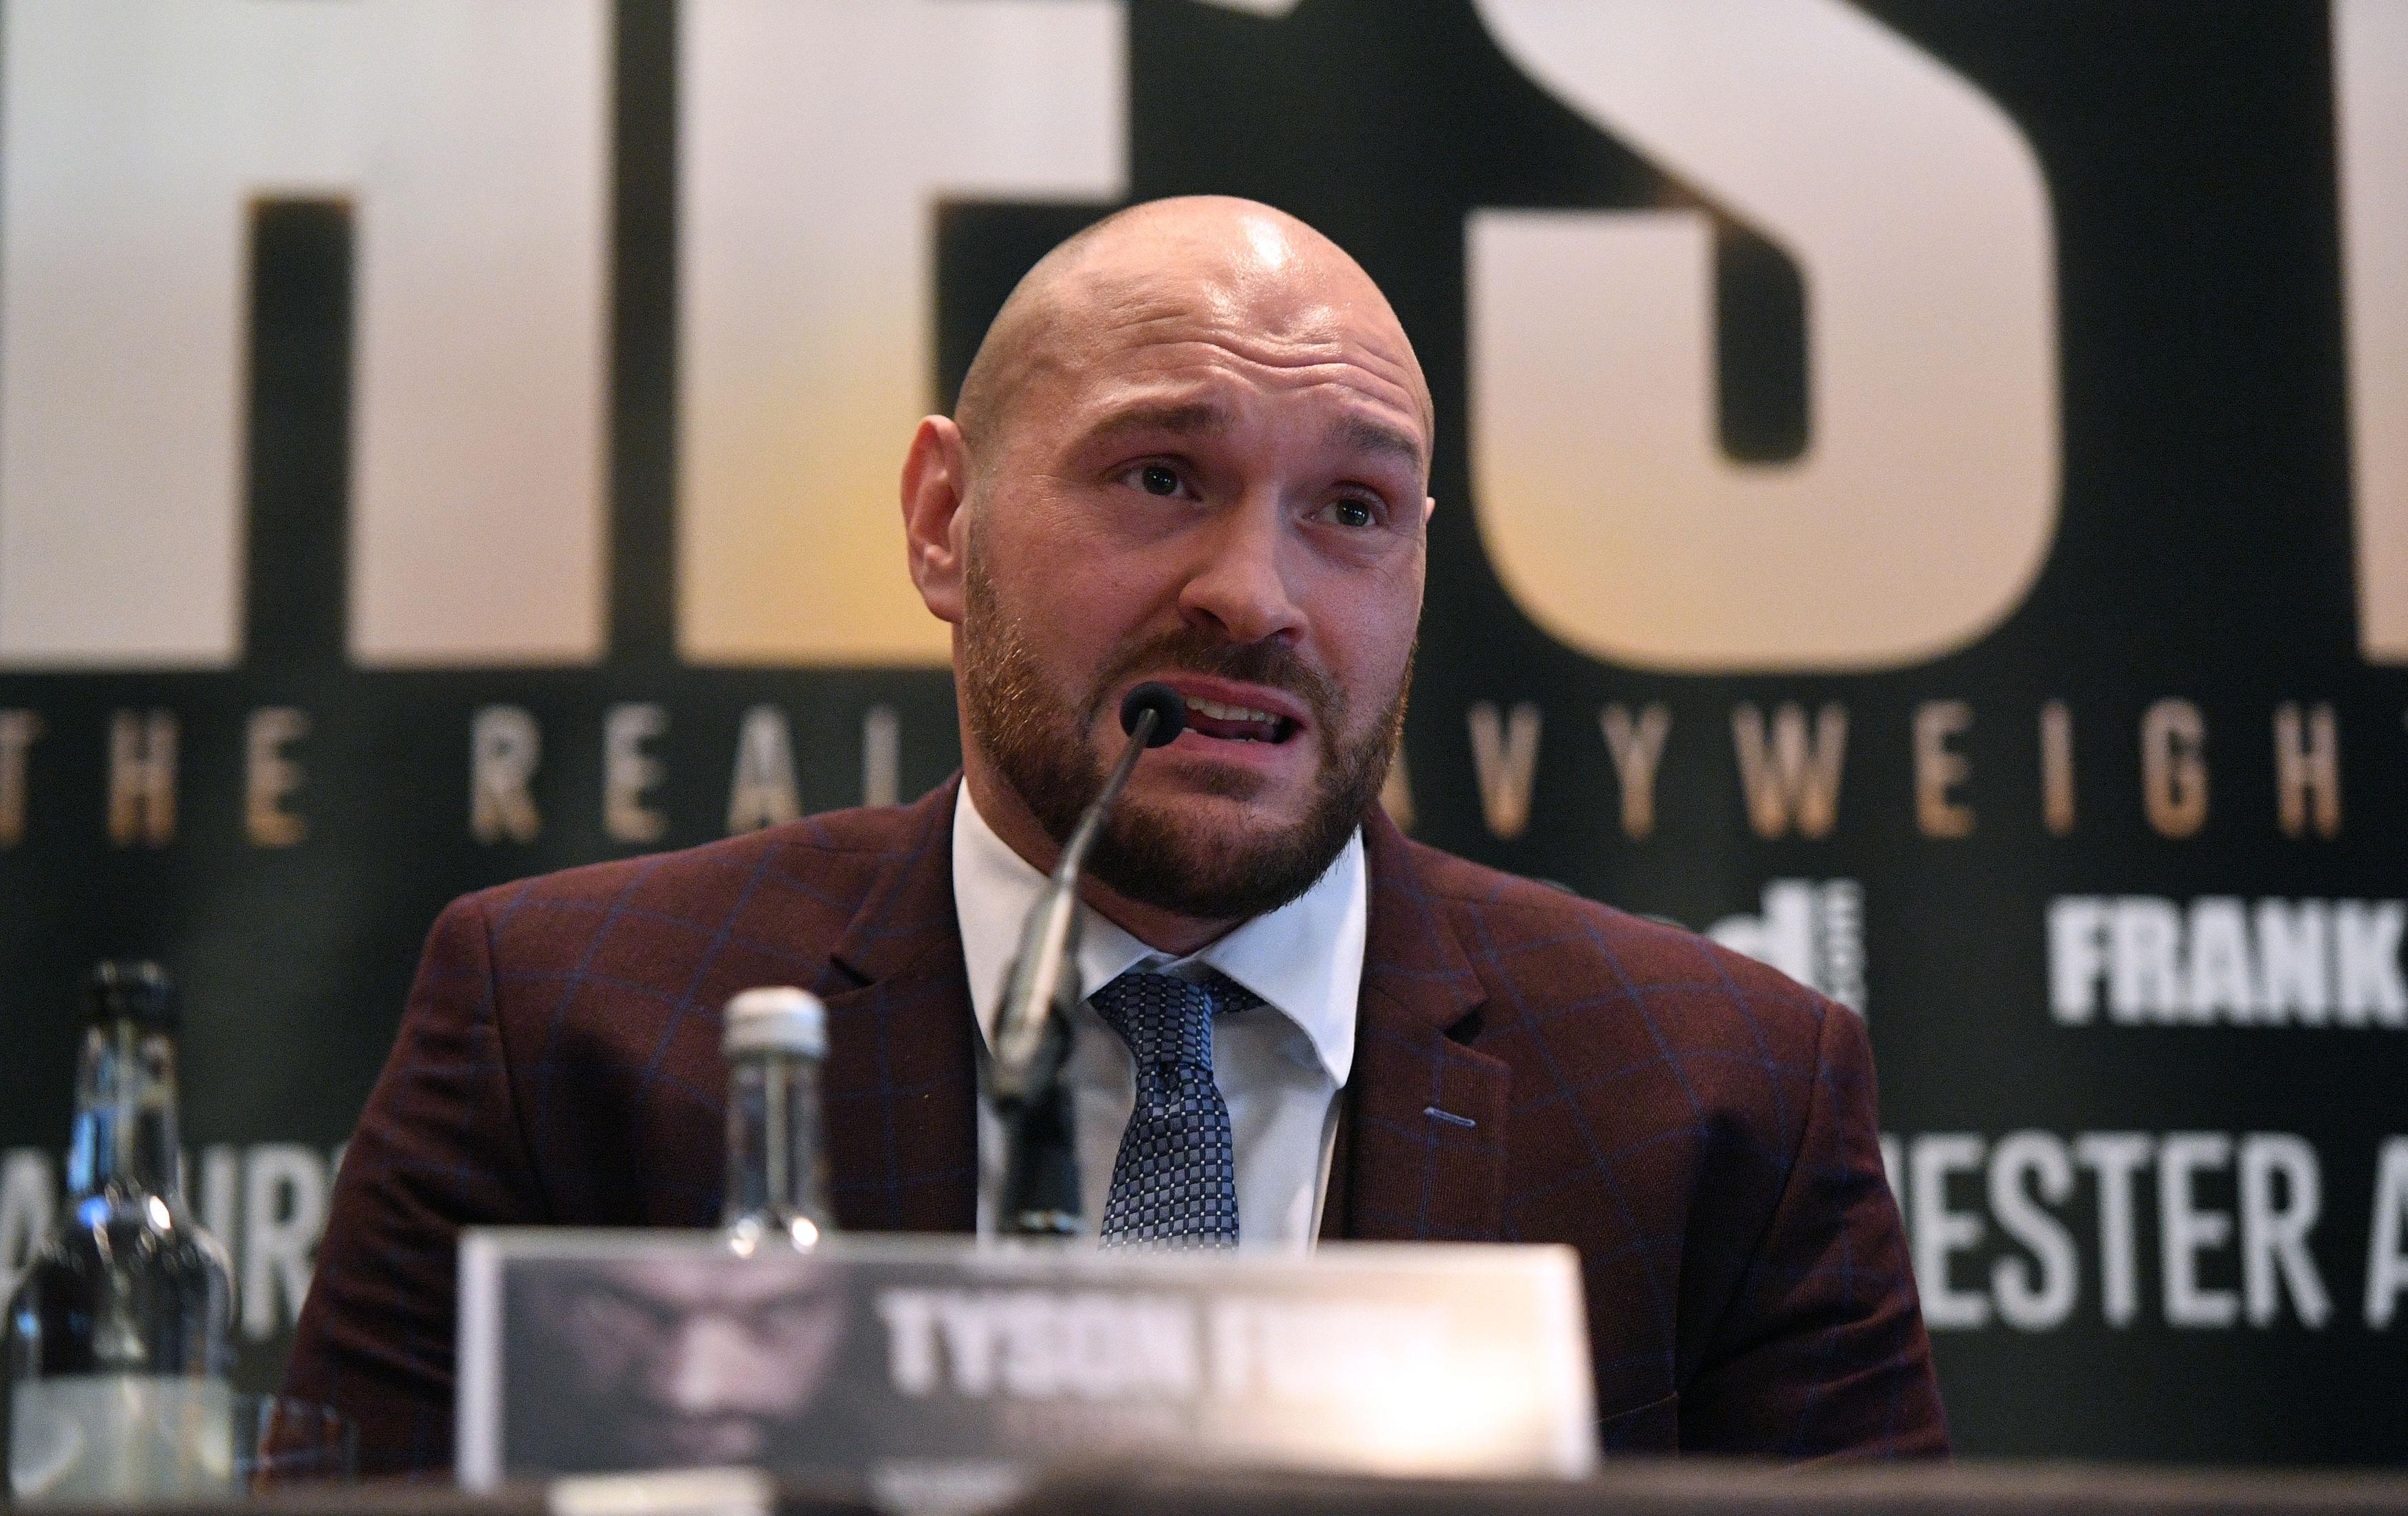 Tyson Fury is like a 'fart in the wind' according to Wladimir Klitschko